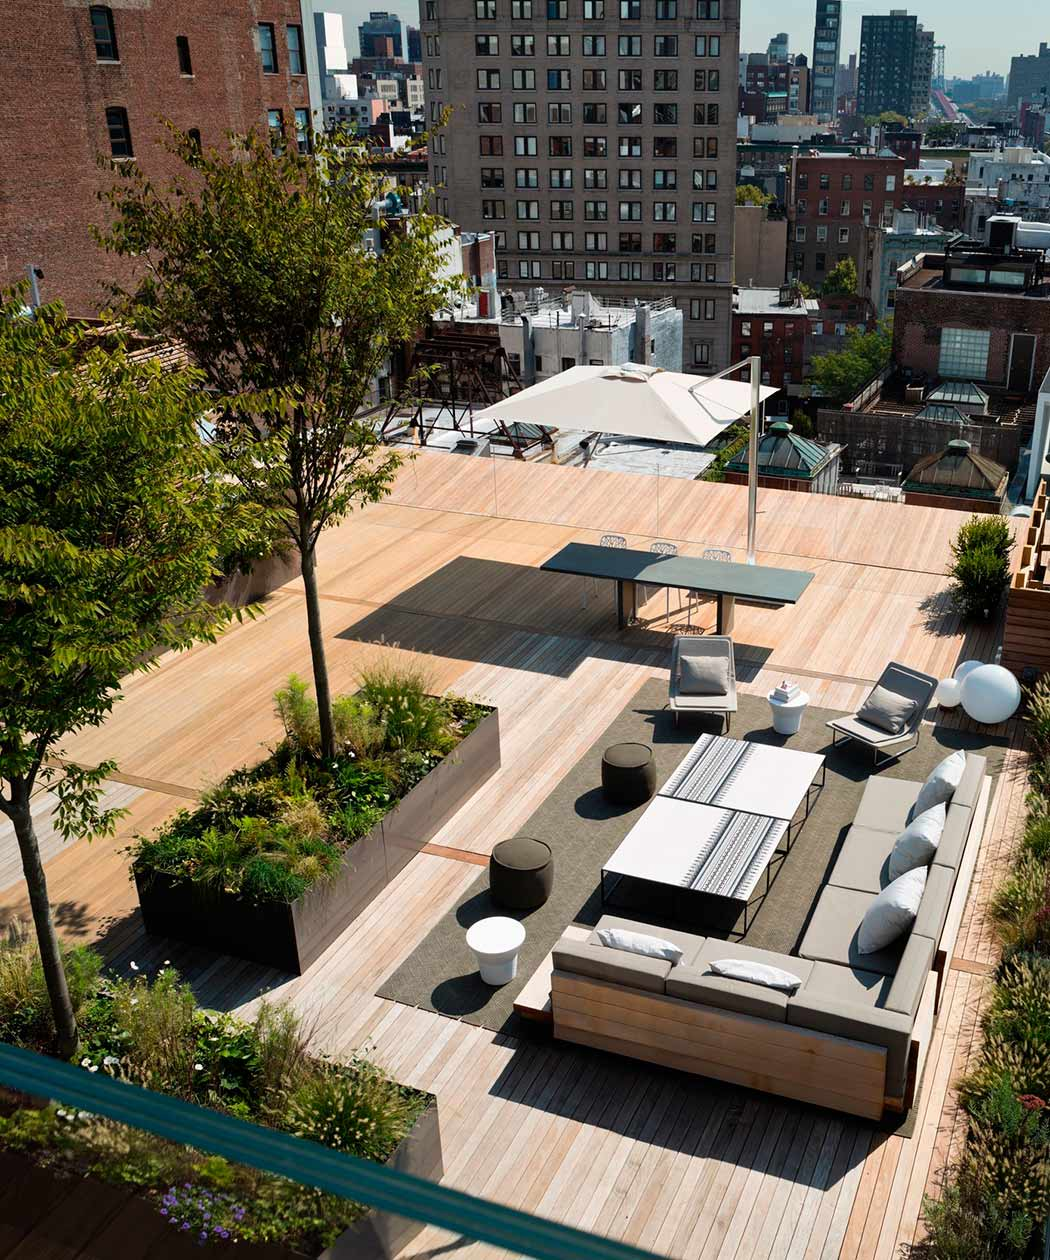 """Rooftop Garden Designs For Small Spaces: Garden Graffiti (Part 6): """"Up The Ladder To The Roof"""